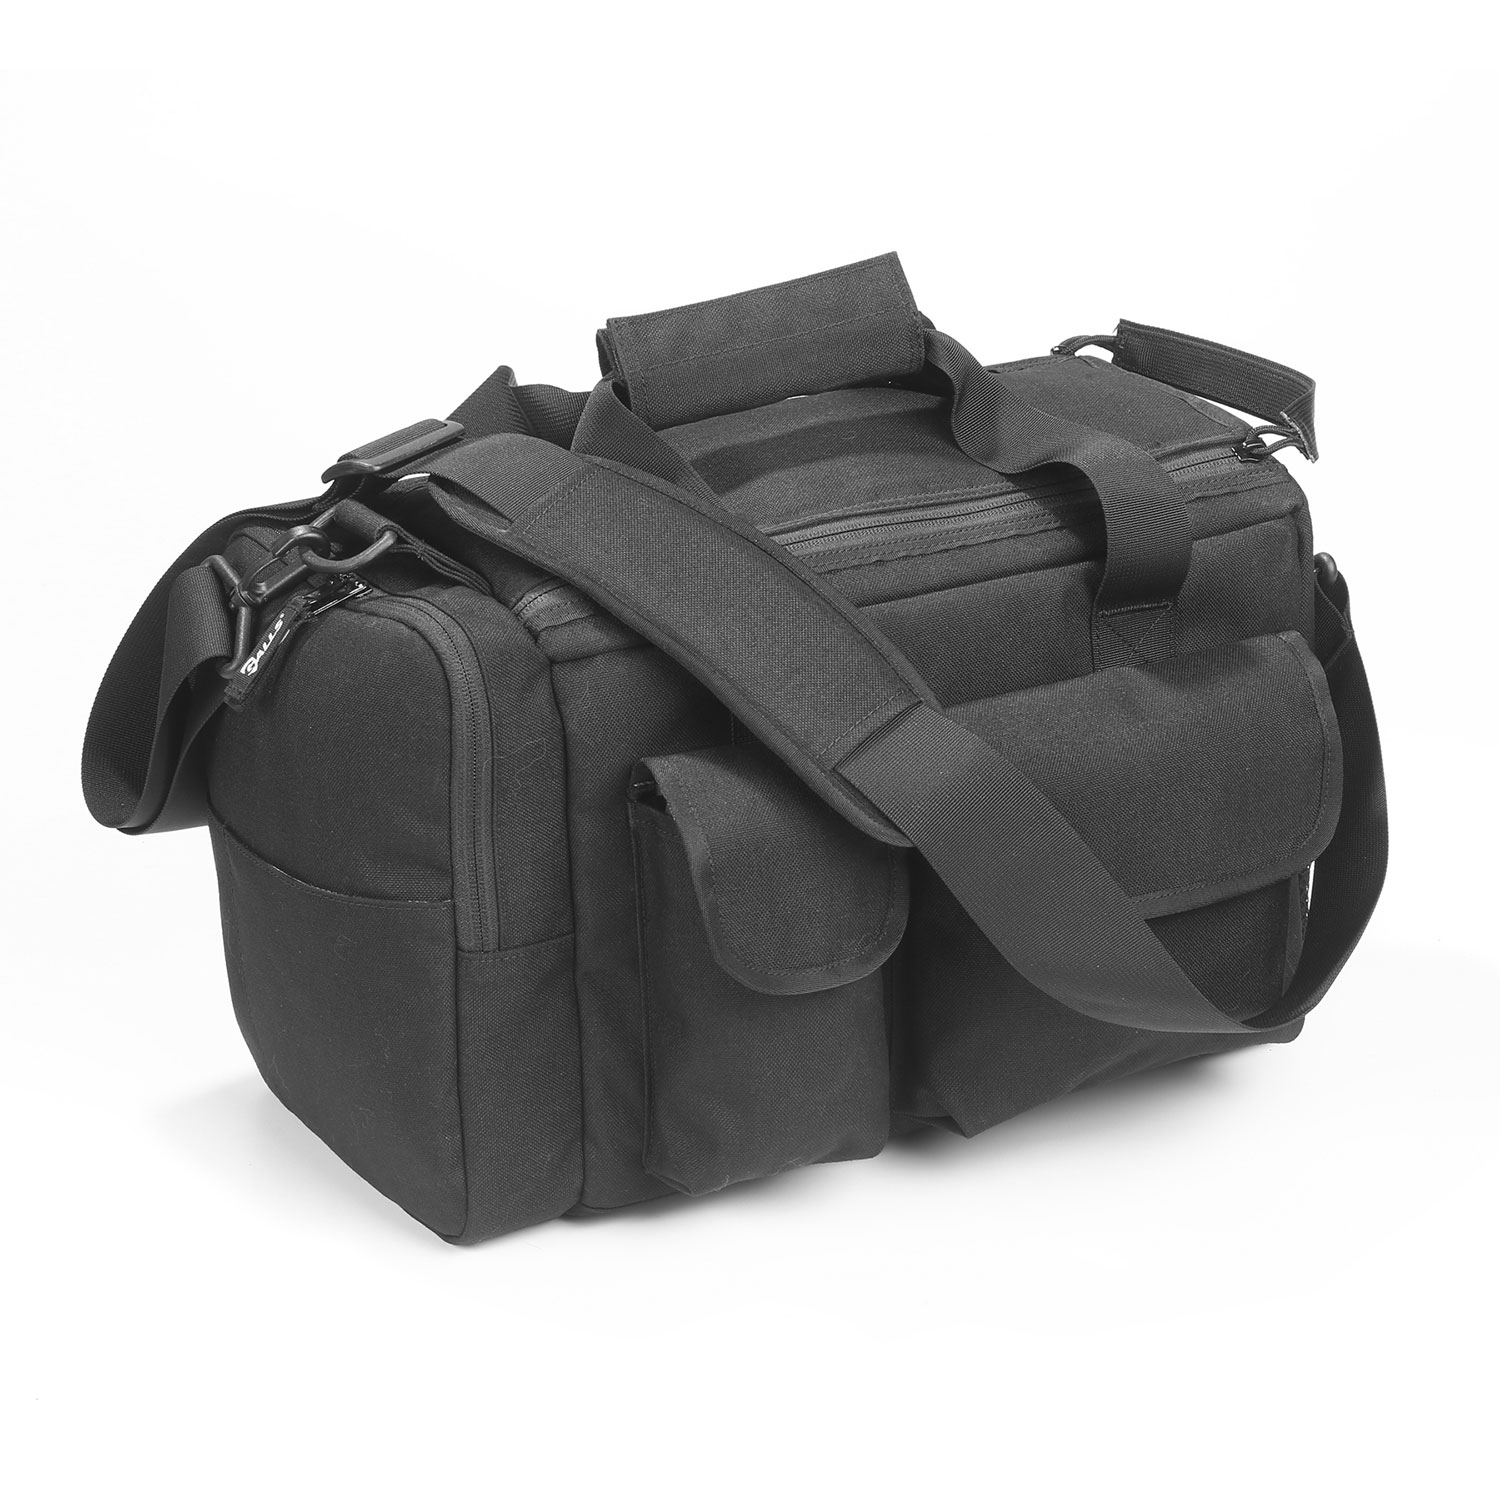 Galls Small Range Duffle Bag